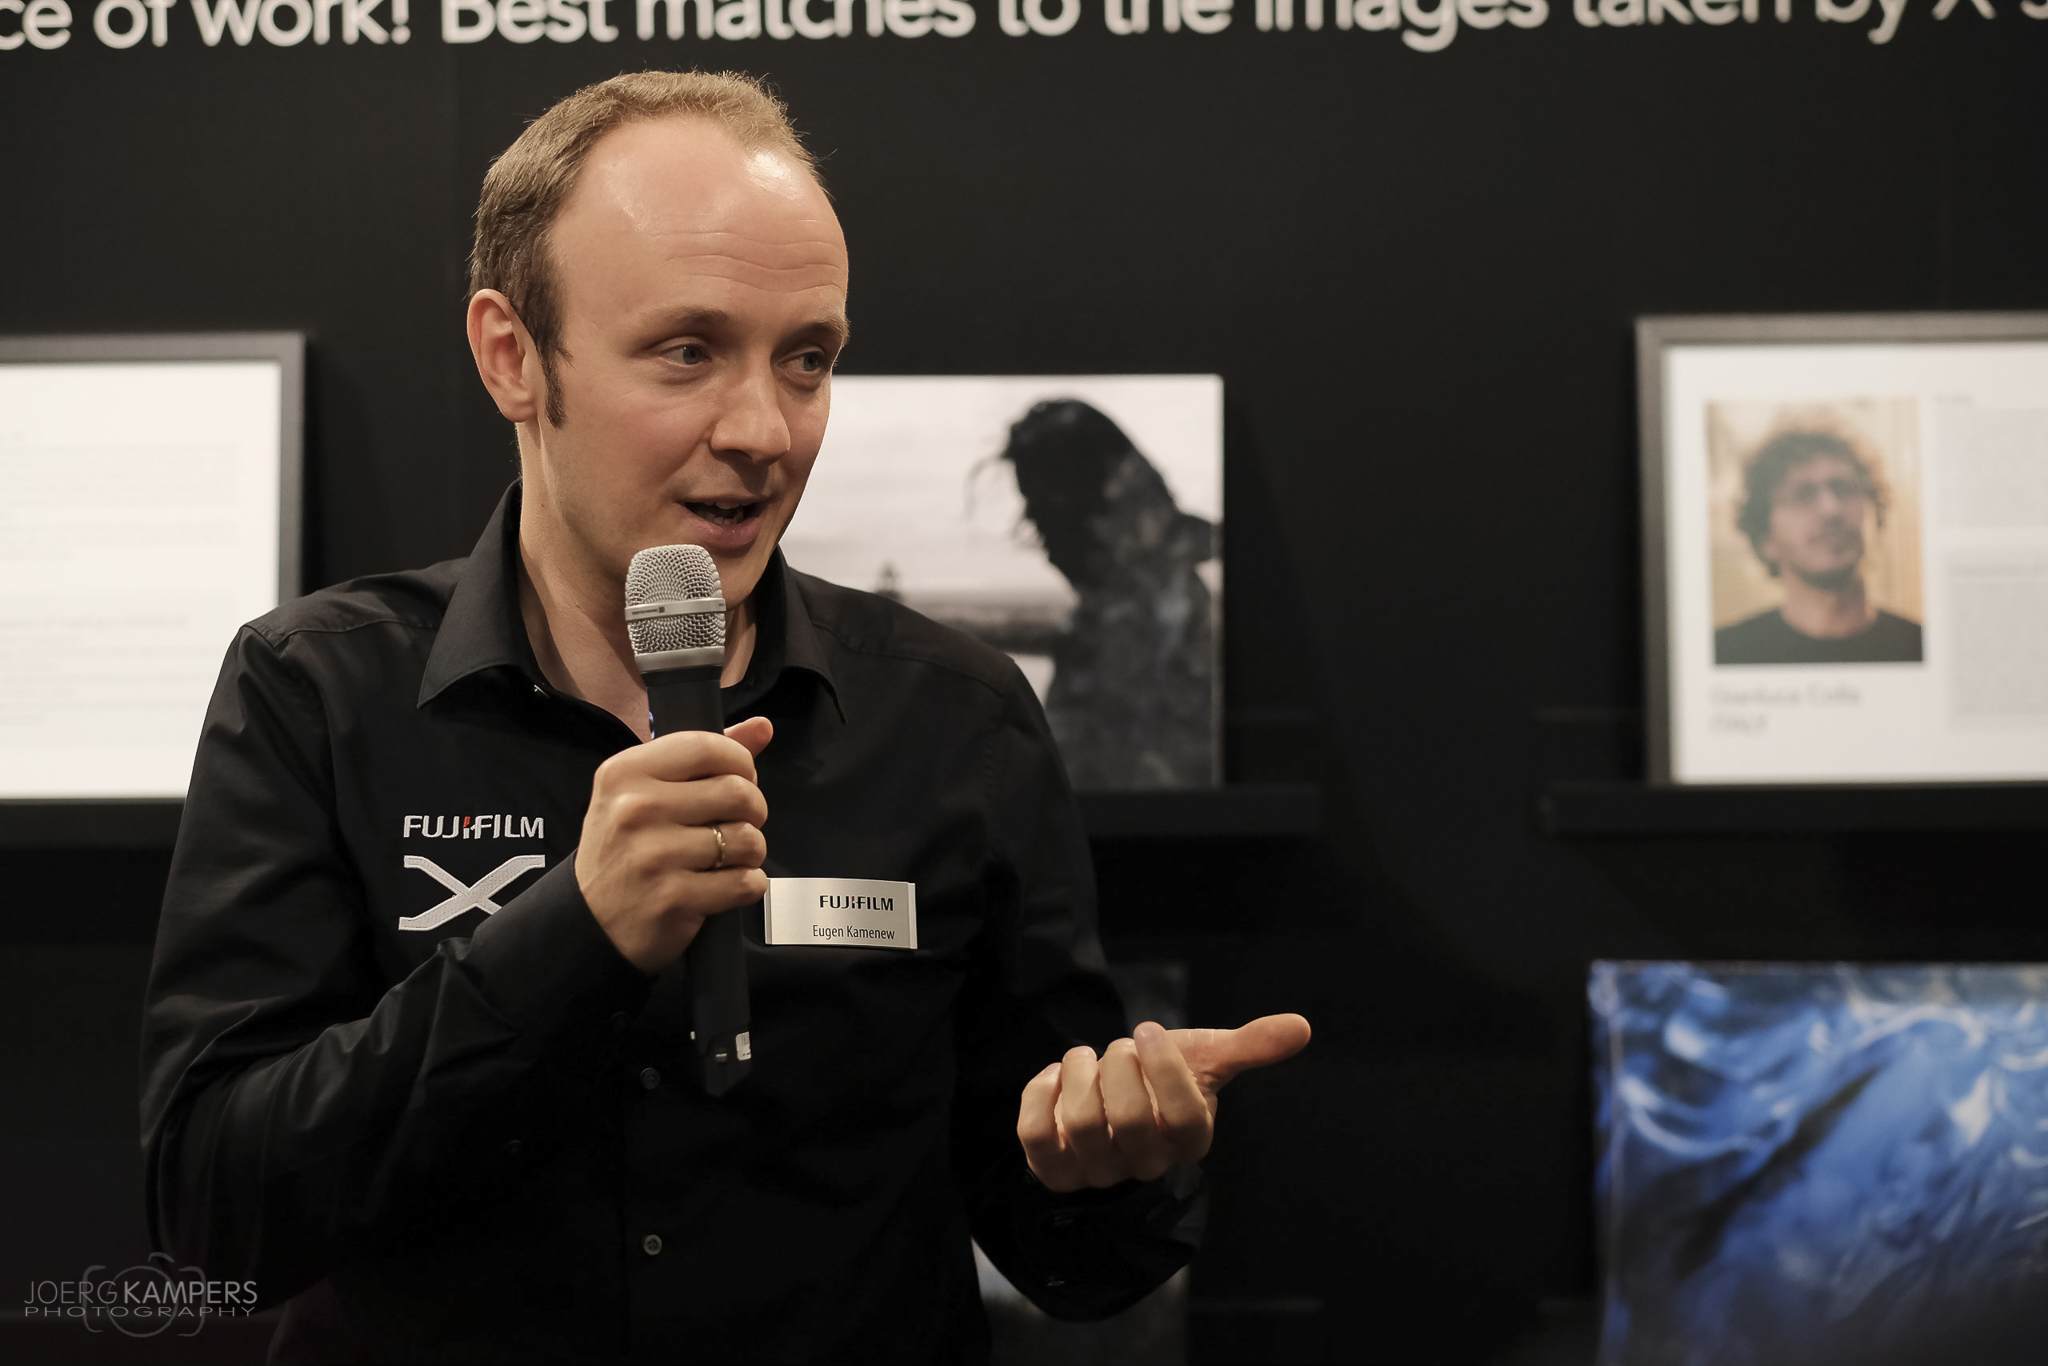 Eugen Kamenew (official Fujifilm X-Photographer) at Photokina 2016 giving a public speech